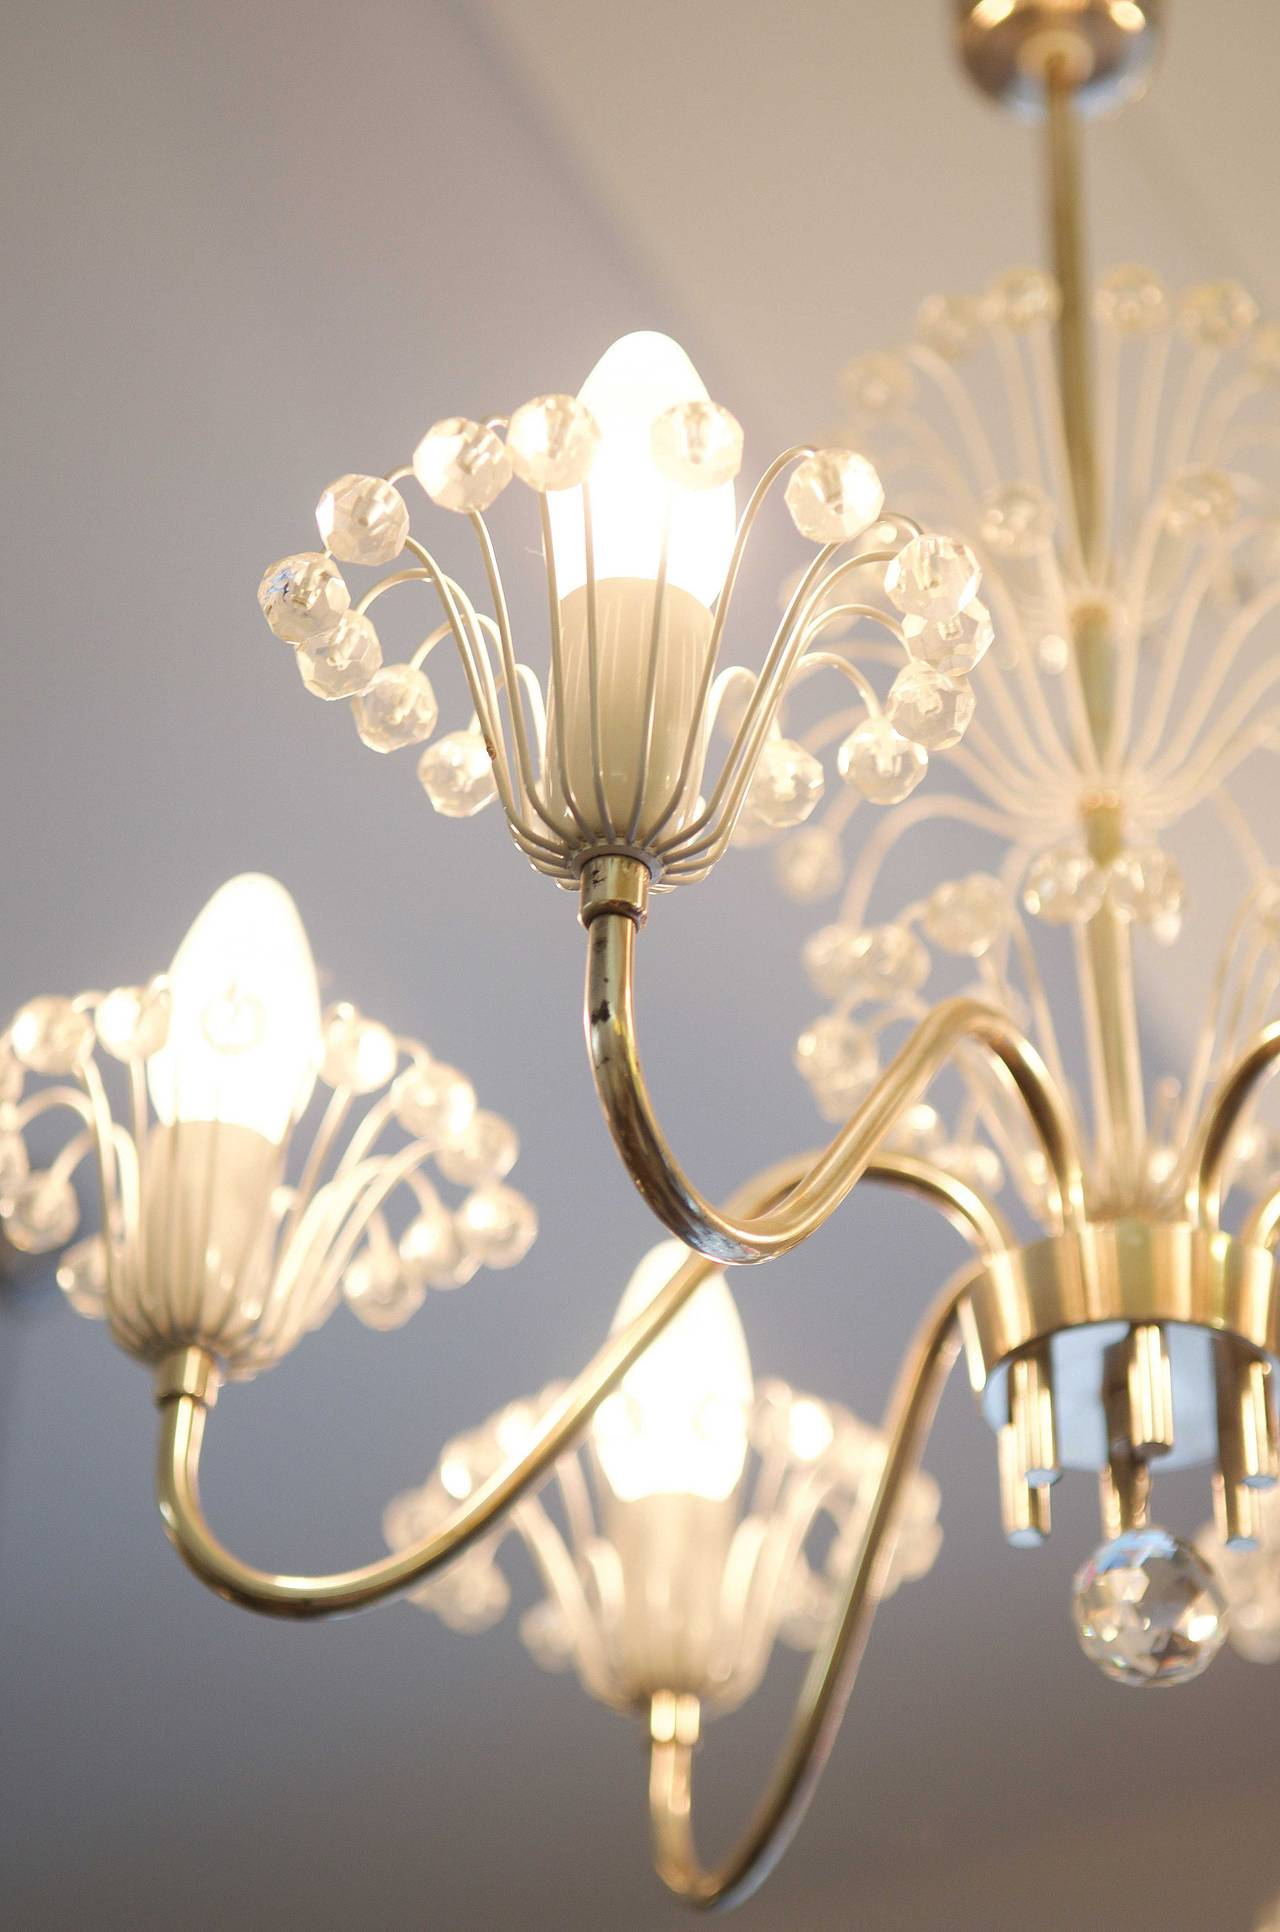 Mid-Century Fountain Chandelier by Emil Stejnar for Rupert Nikoll In Excellent Condition For Sale In Vienna, AT